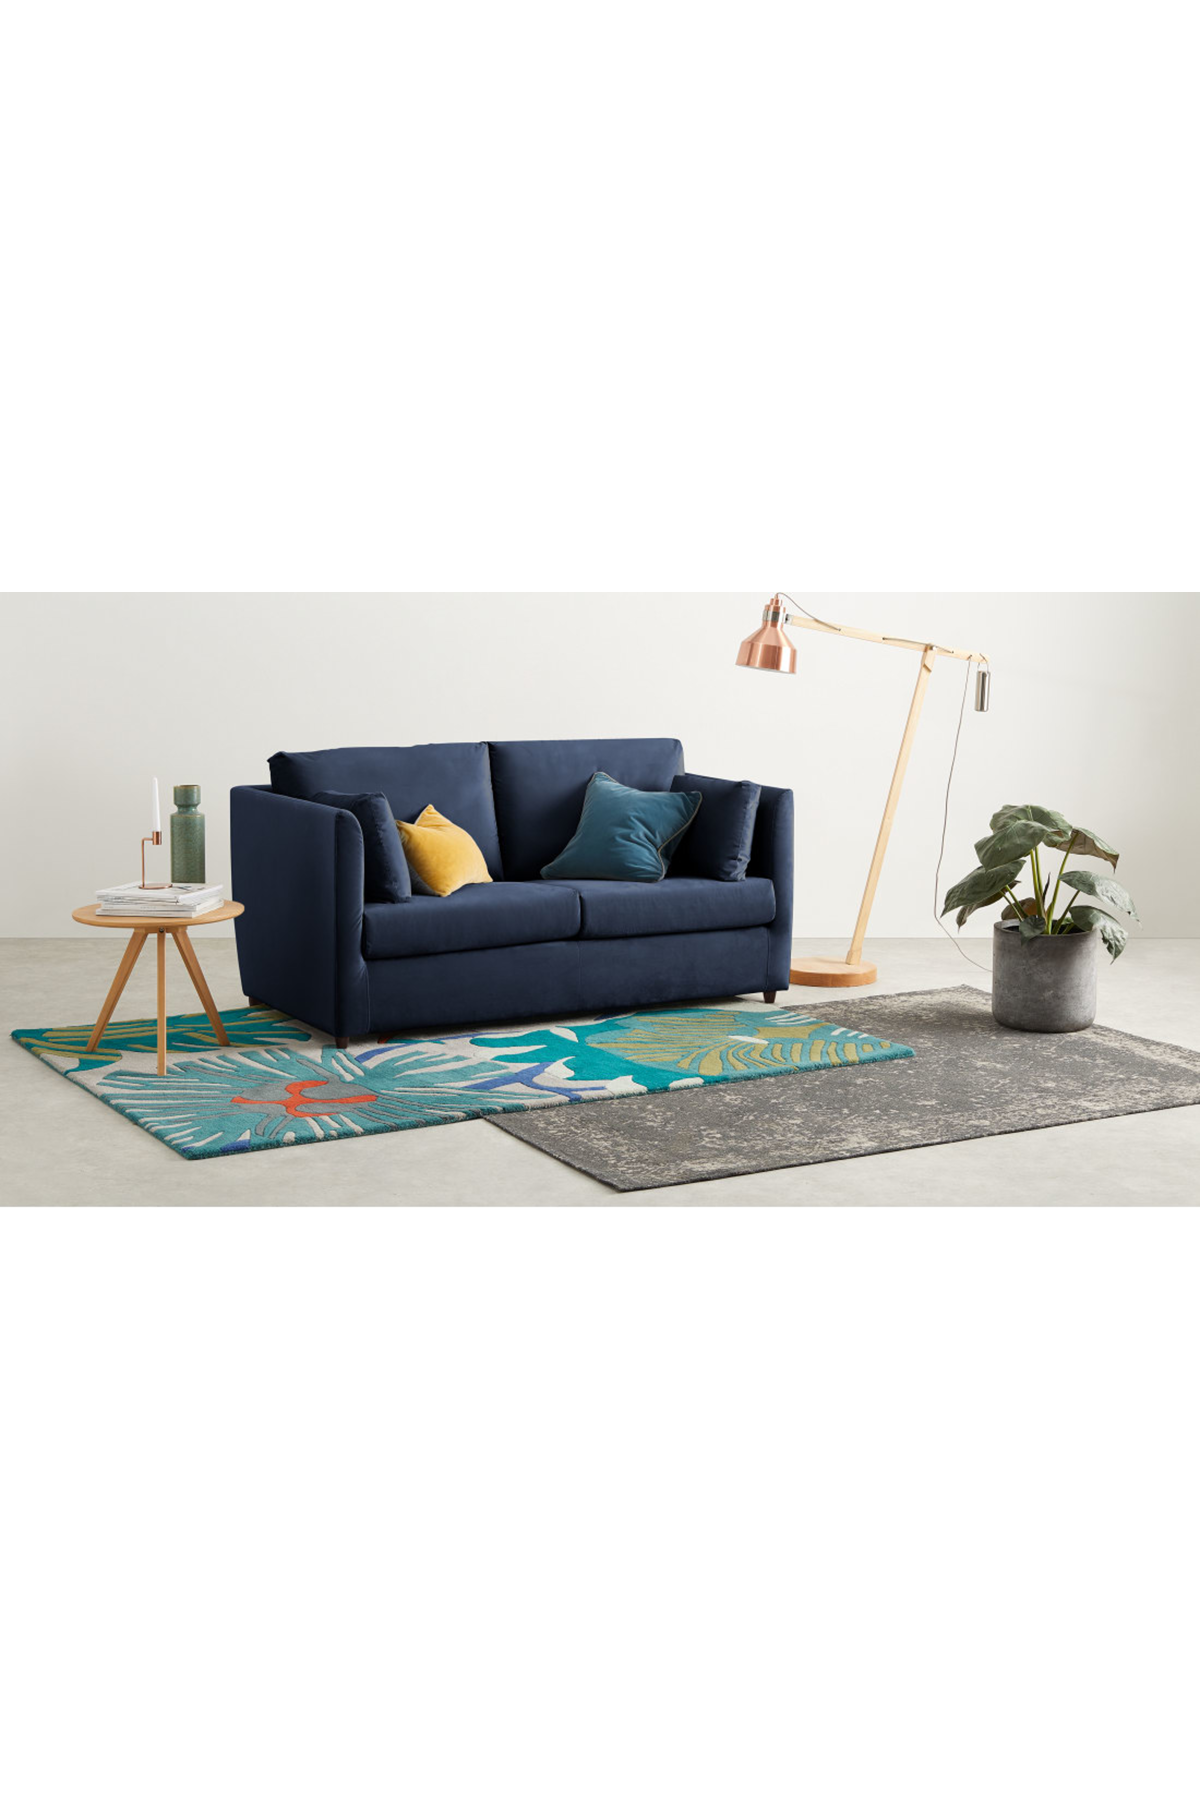 Awe Inspiring Made Regal Blue Sofa Bed In 2019 Sofa Bed Sofa Bed Ocoug Best Dining Table And Chair Ideas Images Ocougorg